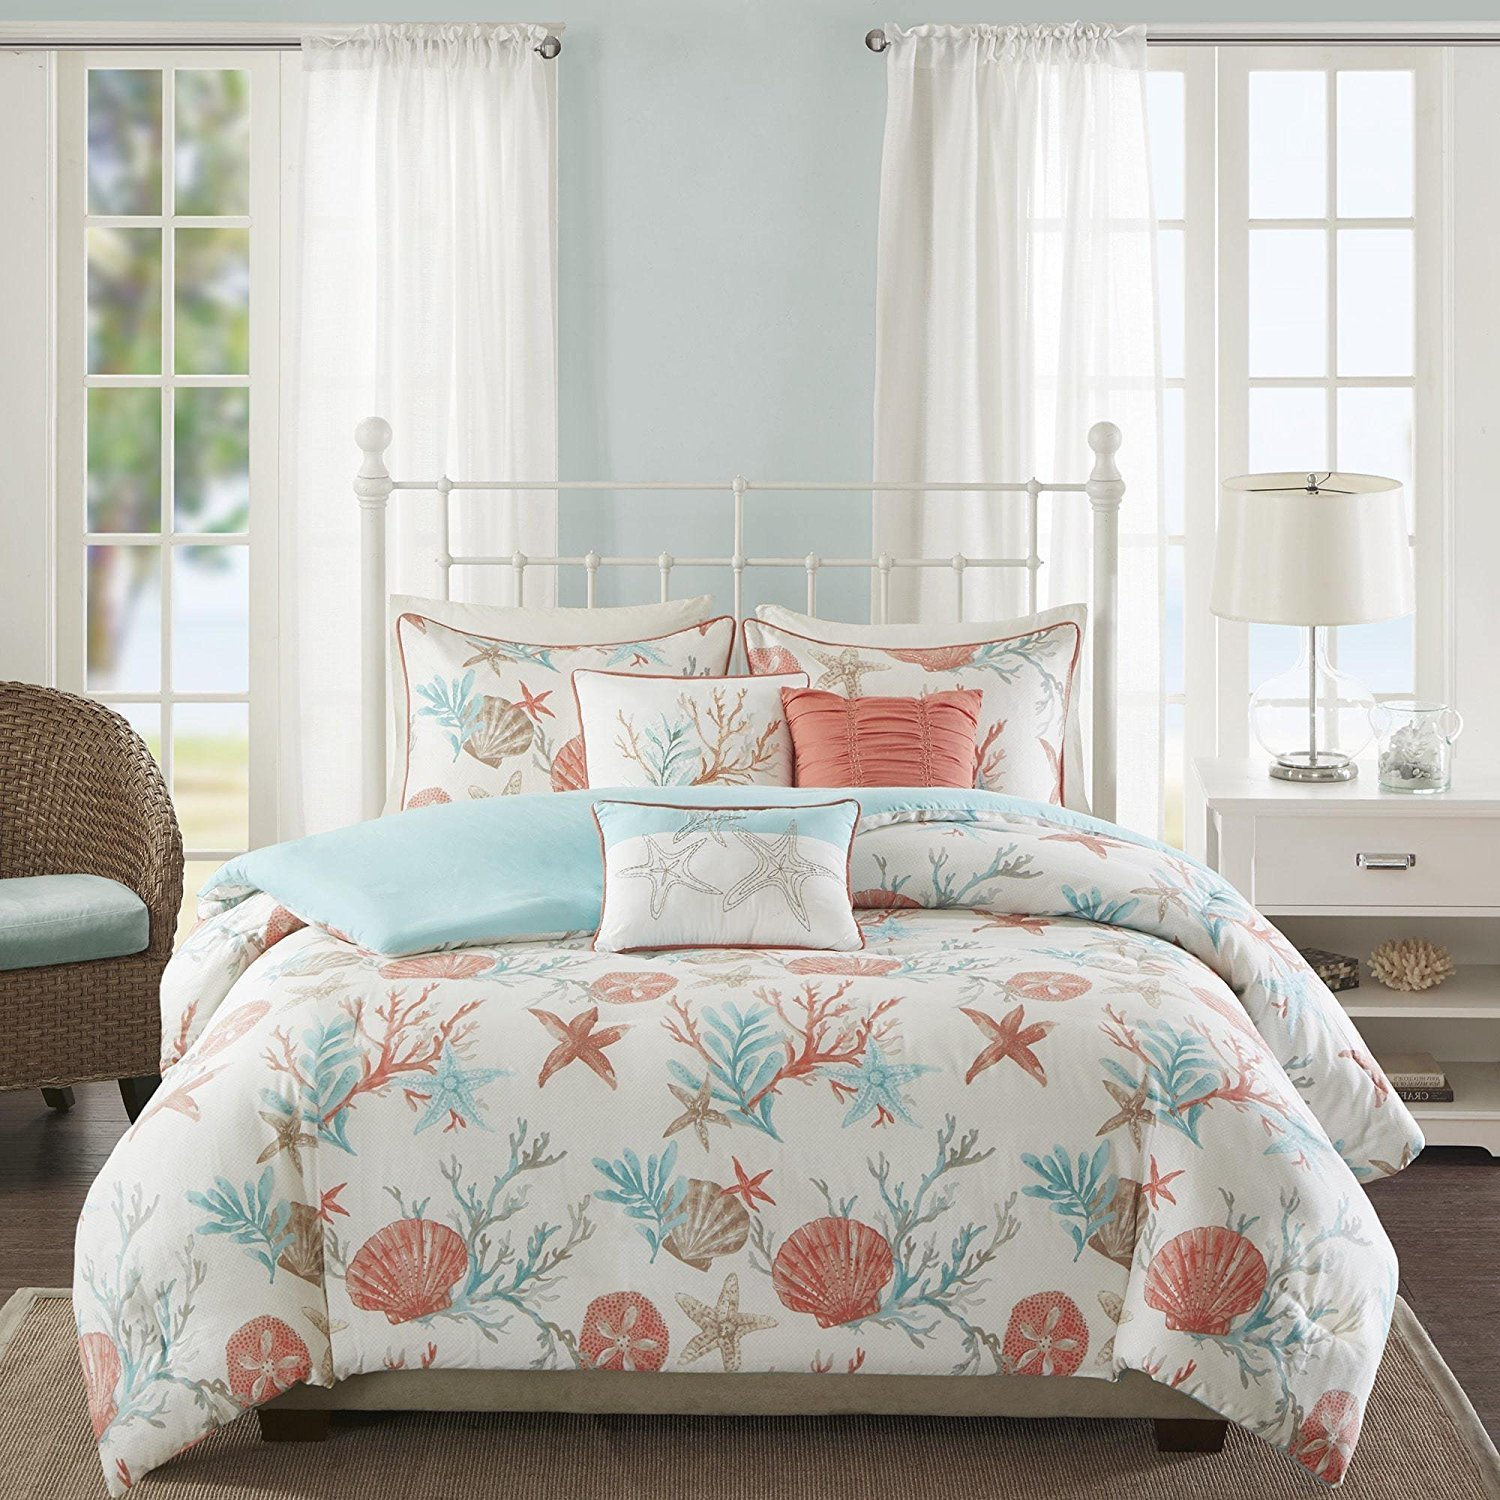 6pc Pink Coastal Full Queen Size Duvet Cover Set, Beach House Themed Bedding Coral Reefs Sea Shell Star Fish Ocean Vacation Sand Nautical Lake Cottage, Cotton